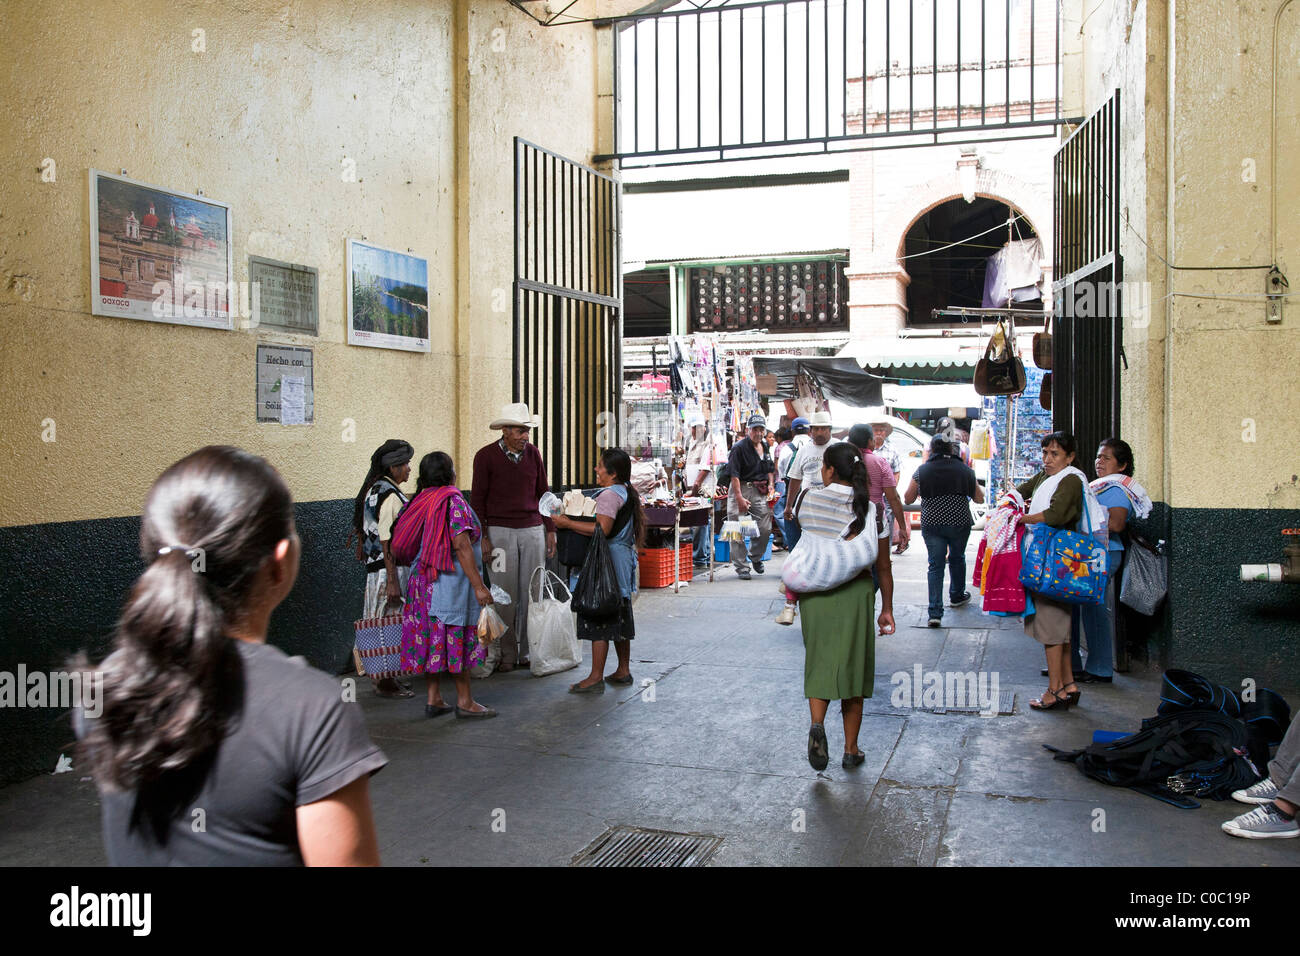 lively entrance to 20 November 20th market bustling with foot traffic customers & indigenous Indian vendors - Stock Image